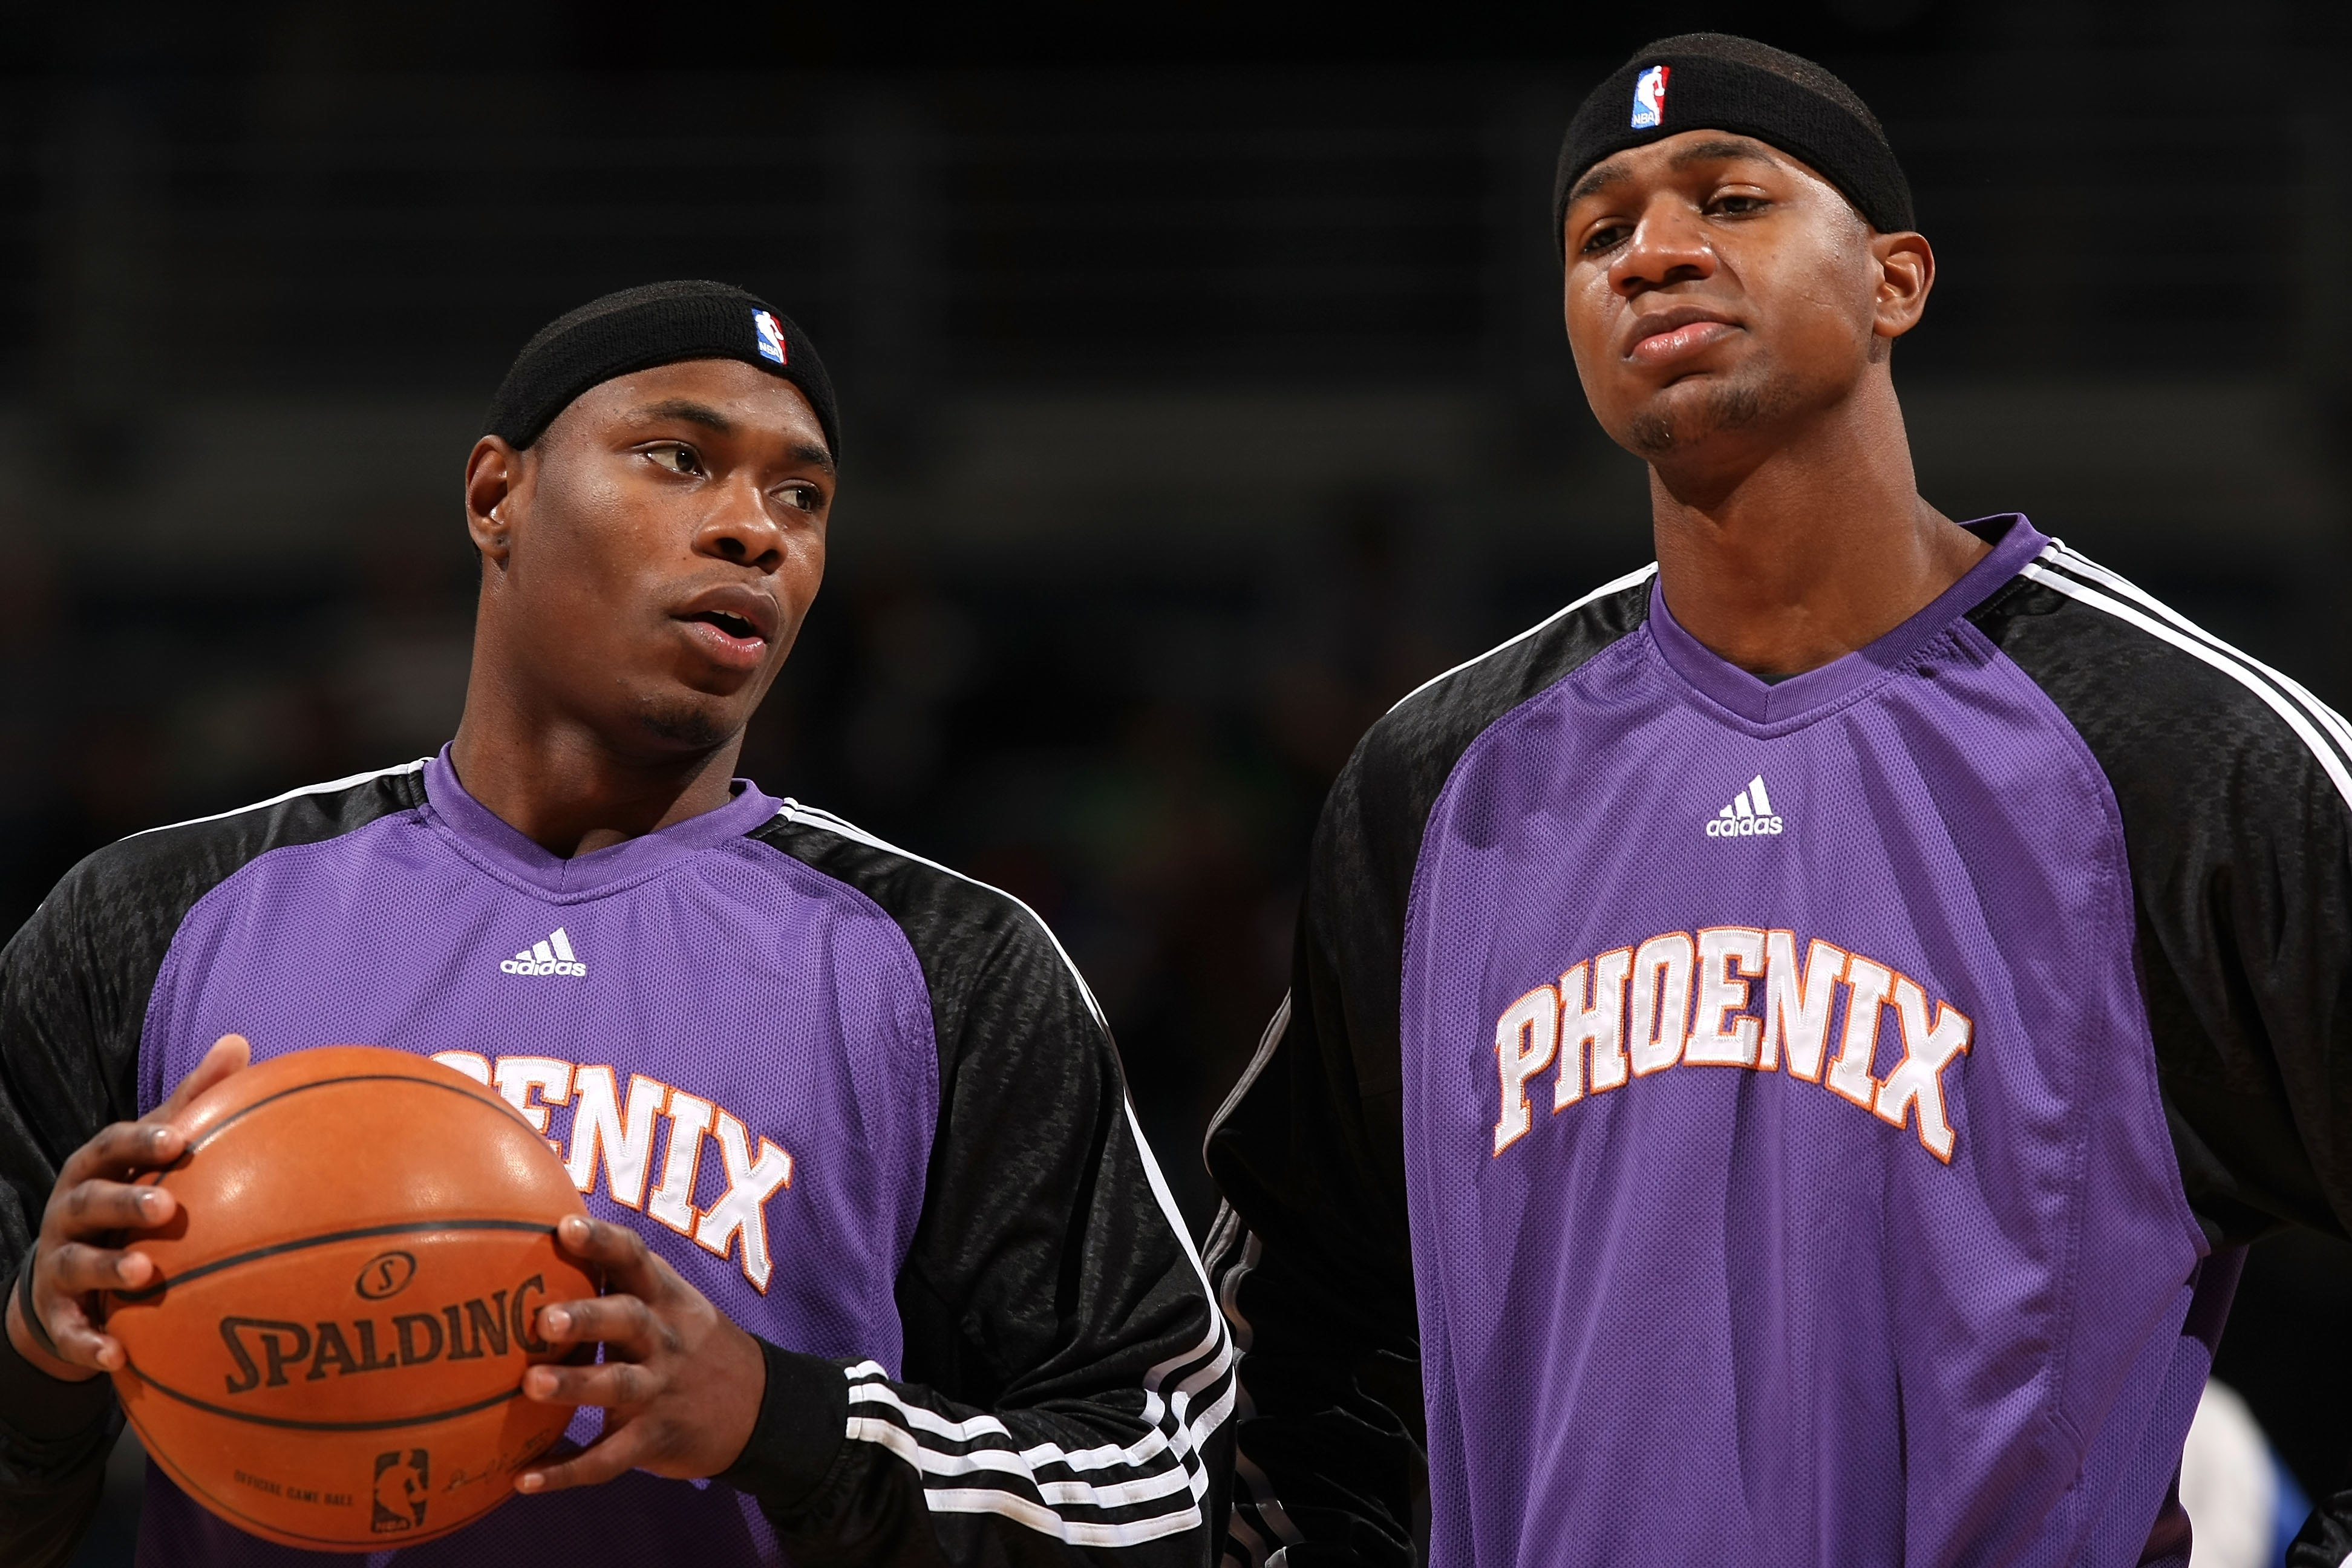 MILWAUKEE - JANUARY 22:  (L-R) Marcus Banks #2 and D.J. Strawberry #8 of the Phoenix Suns talk during warmups against the Milwaukee Bucks at the Bradley Center on January 22, 2008 in Milwaukee, Wisconsin. The Suns won 114-105. NOTE TO USER: User expressly